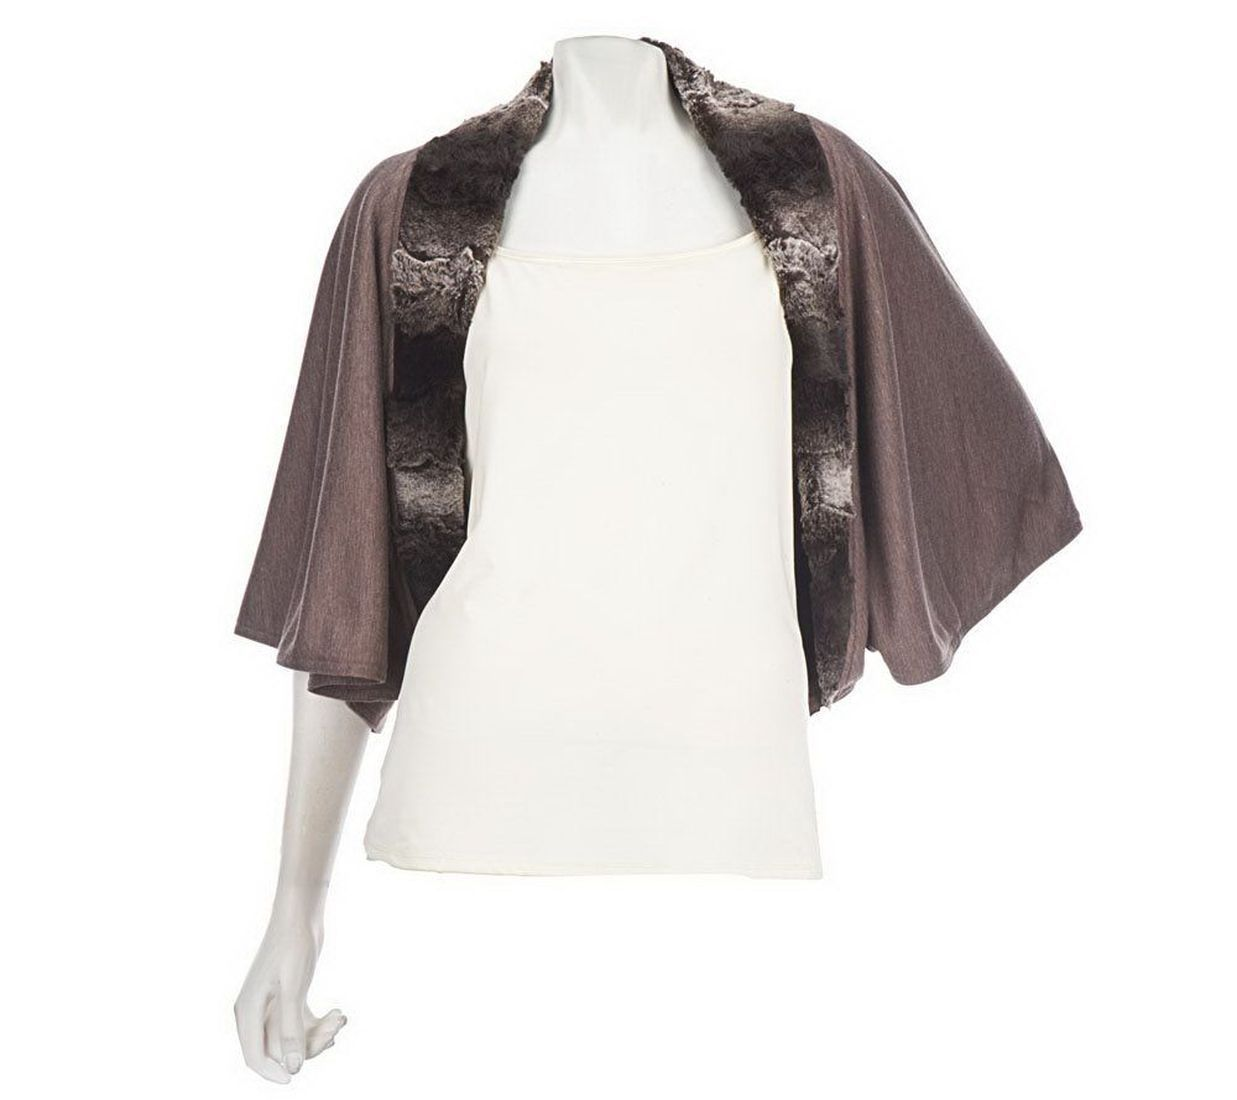 Mark Zunino Style Charming Knit Shrug Faux Fur Trim Heather Taupe M NEW A228022